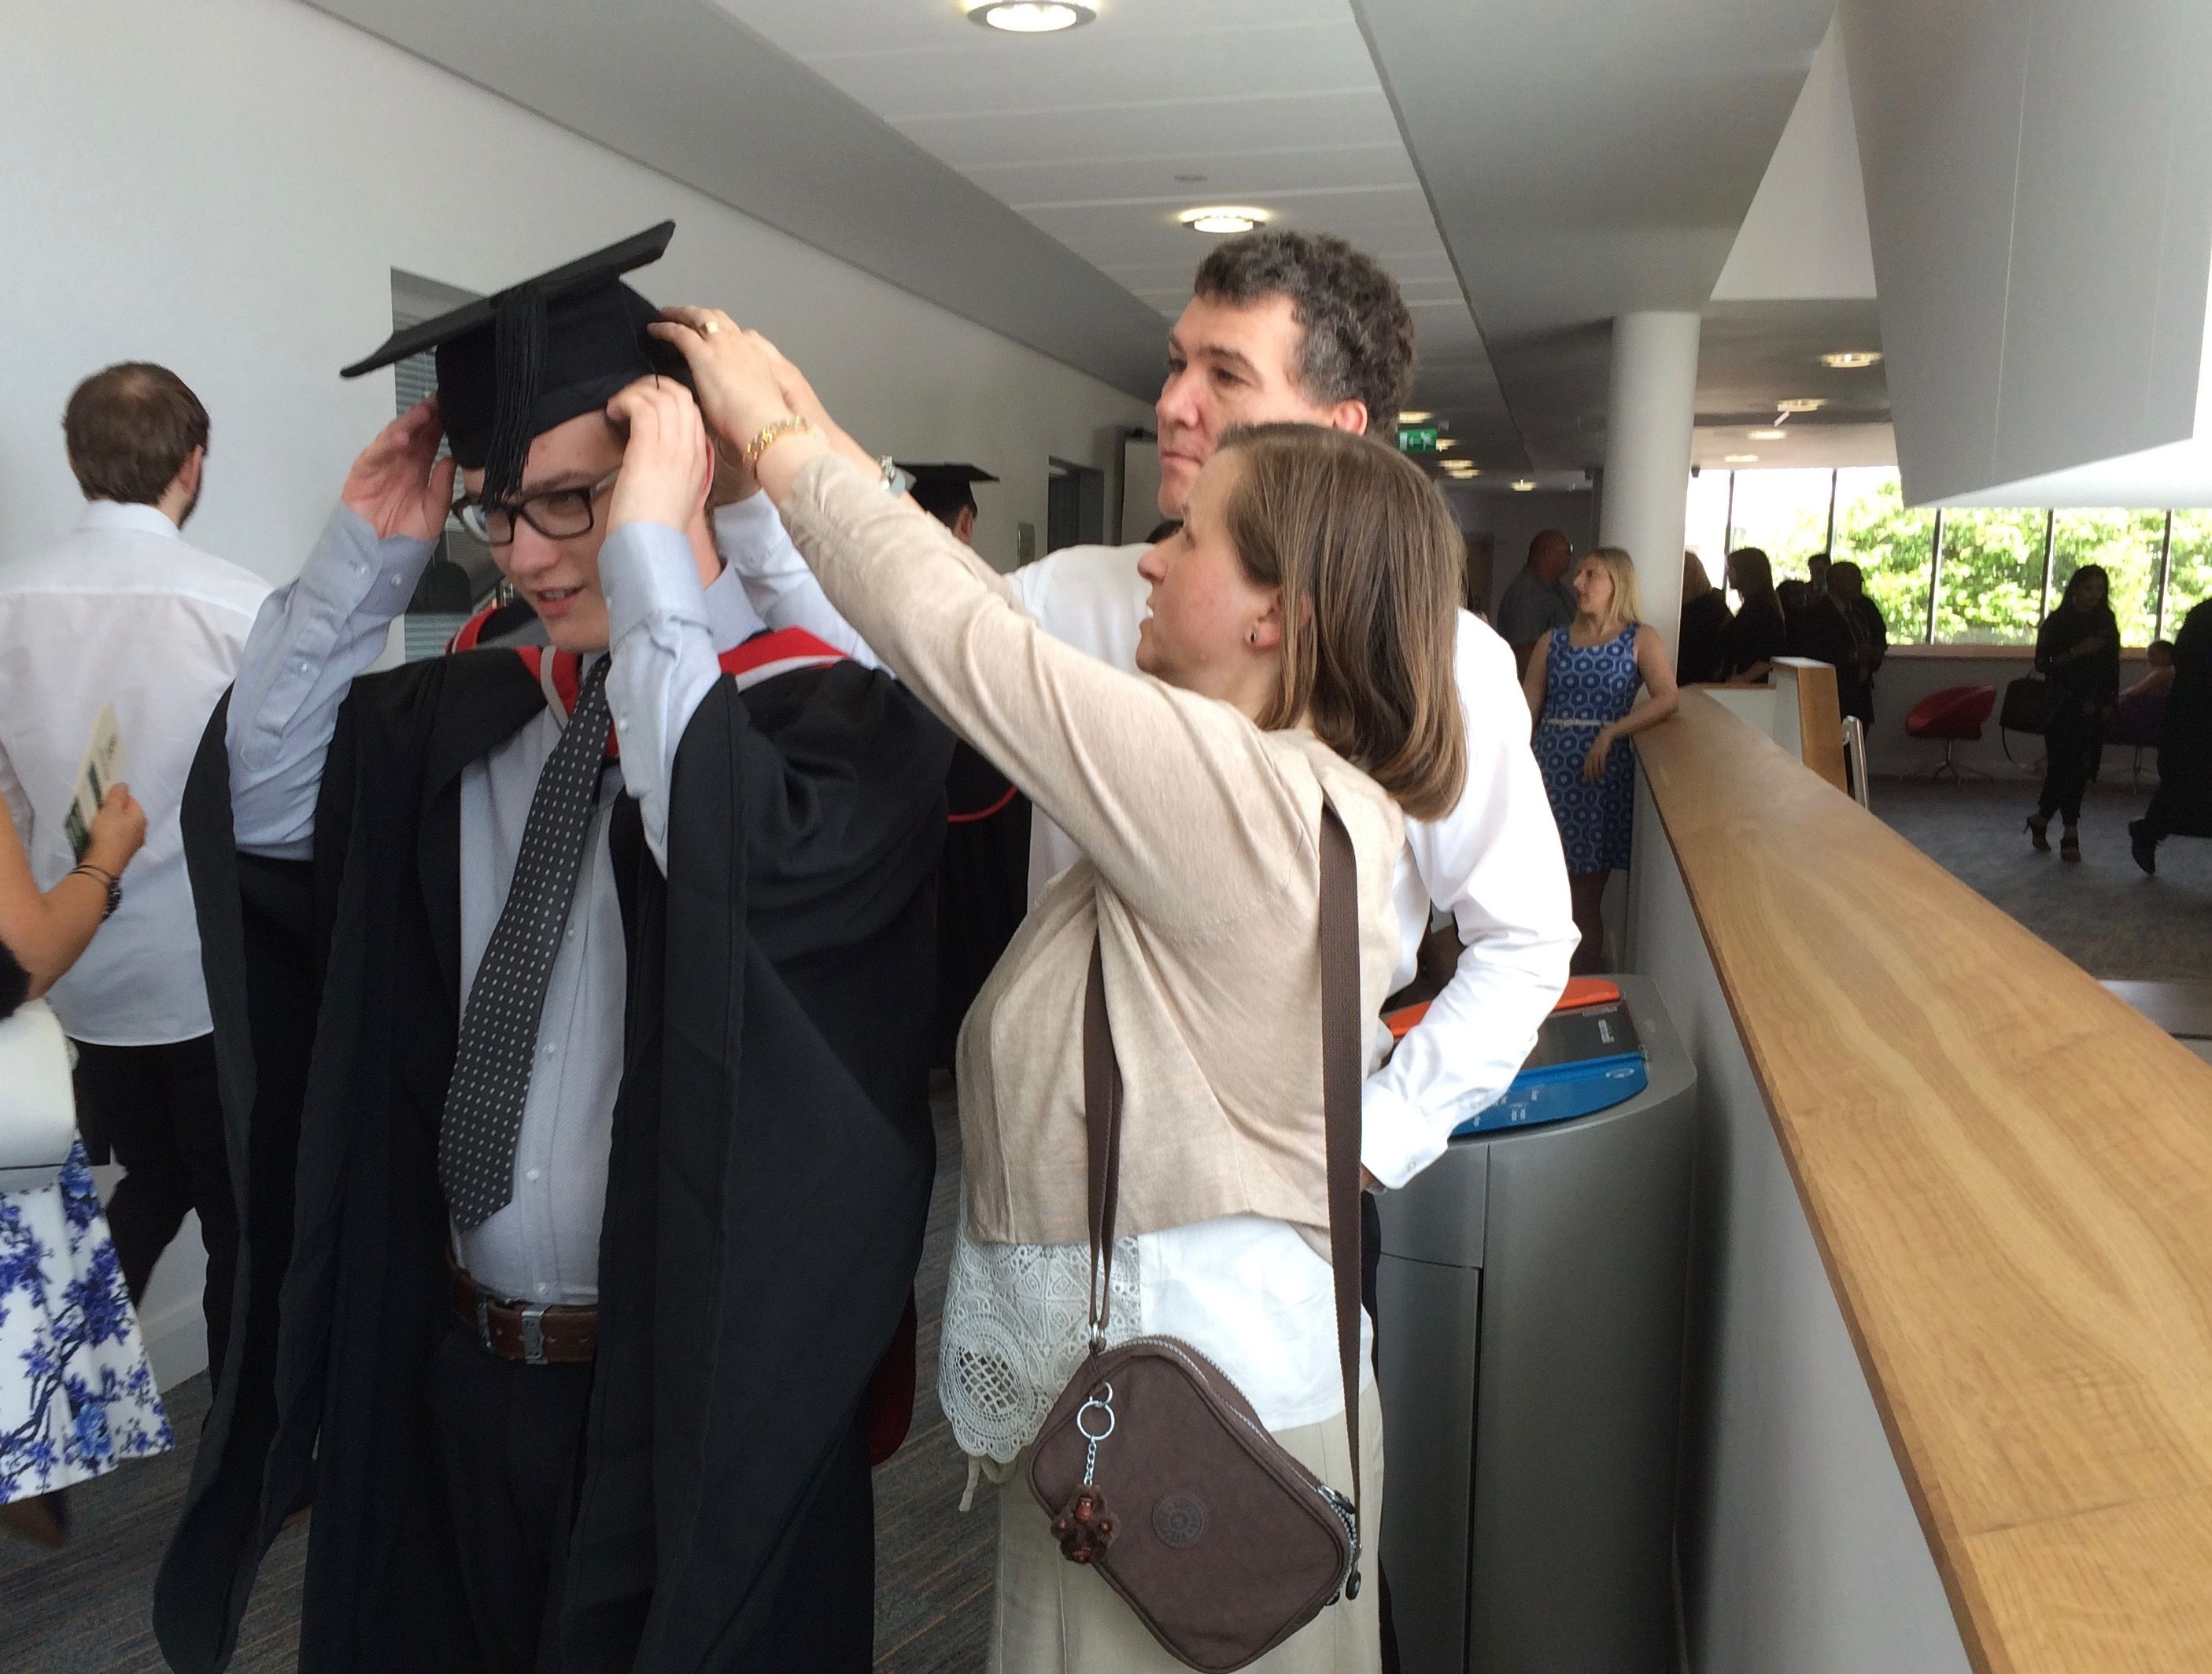 Last minute alterations to Teesside University graduation gown ...